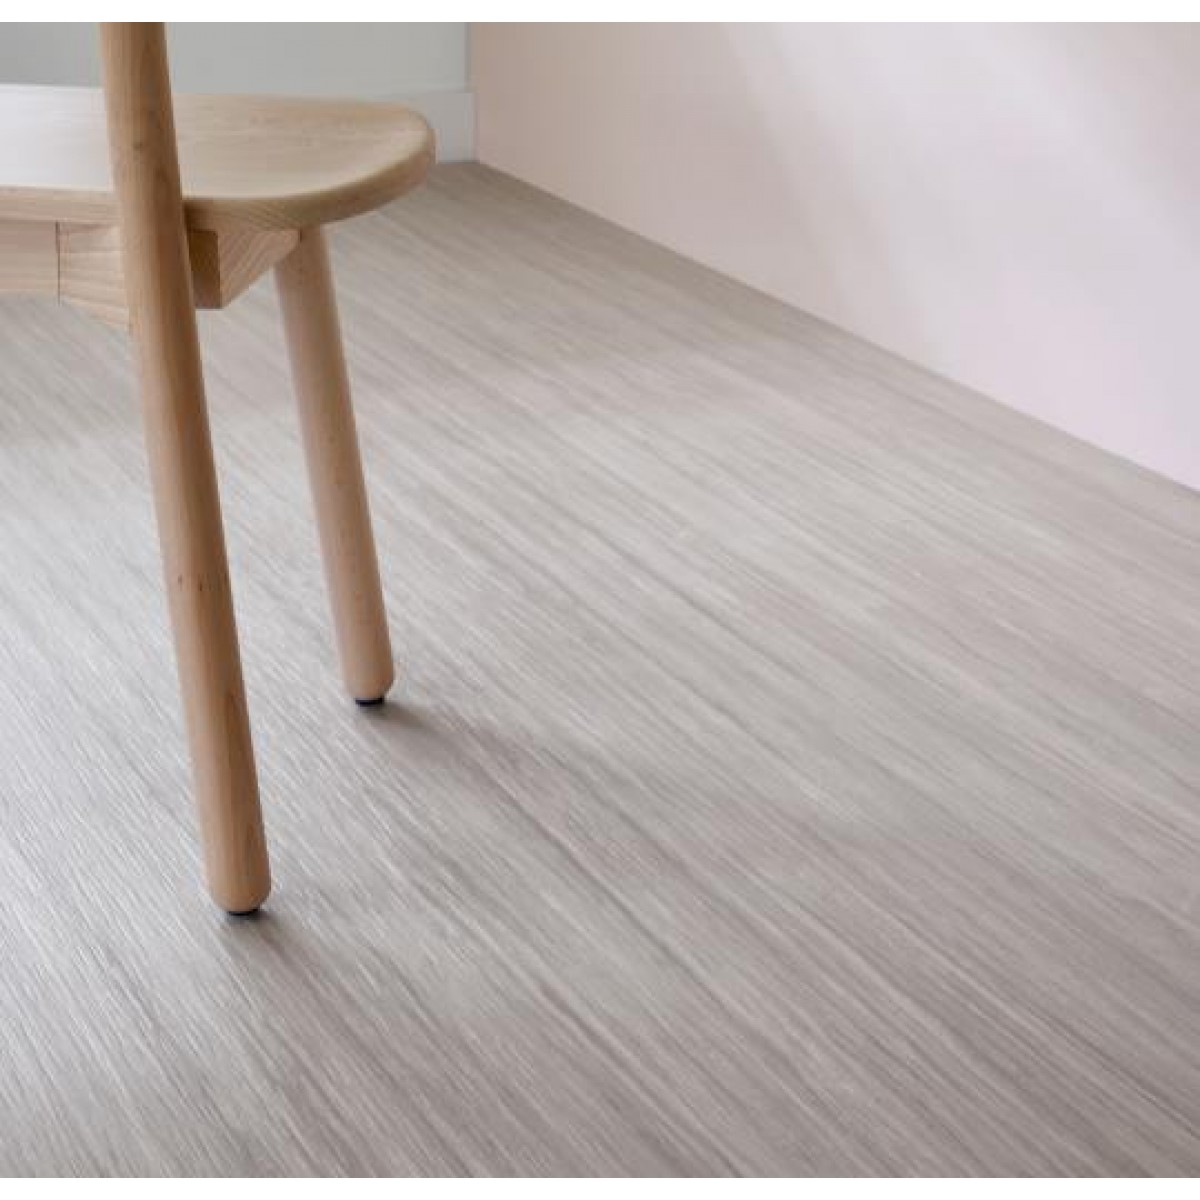 adhesiveforbo full shocking floor size marmoleum of productsforbo ideas systems productsems installation picture flooring dubai bulletin products boardforbo forbo certification reviewsforbo